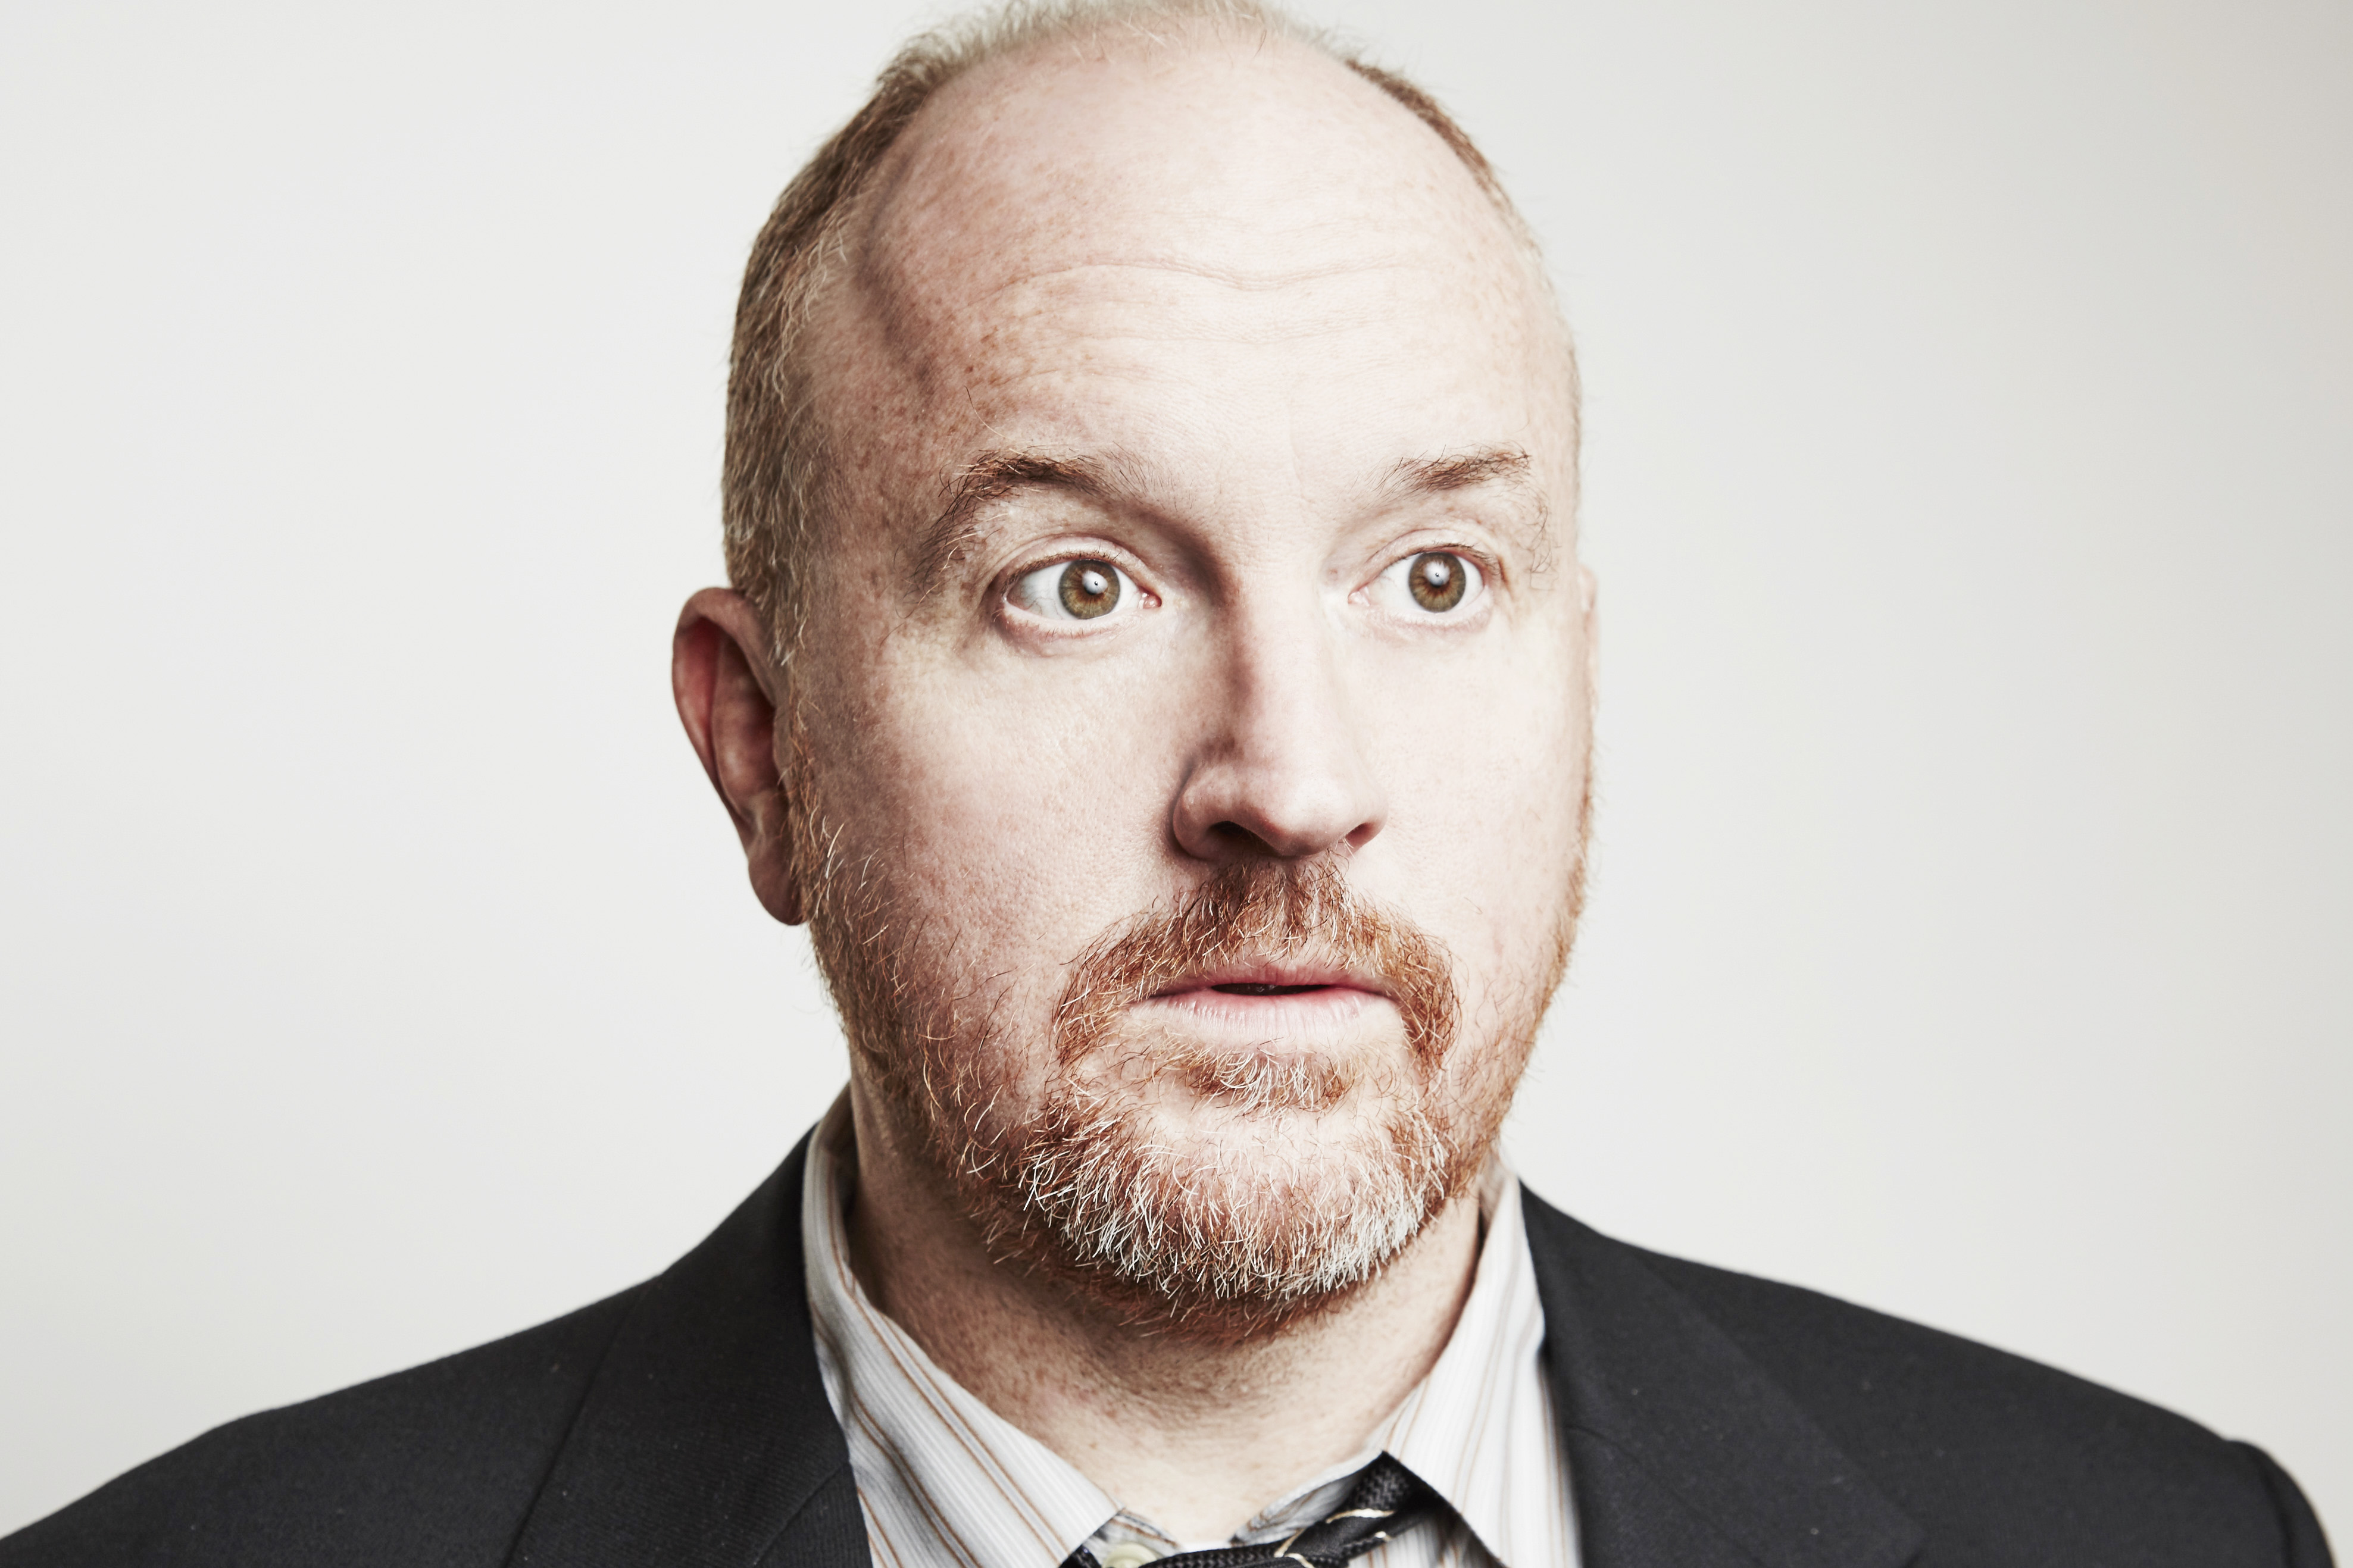 Louis C.K. in Pasadena, CA, on Jan. 19, 2016